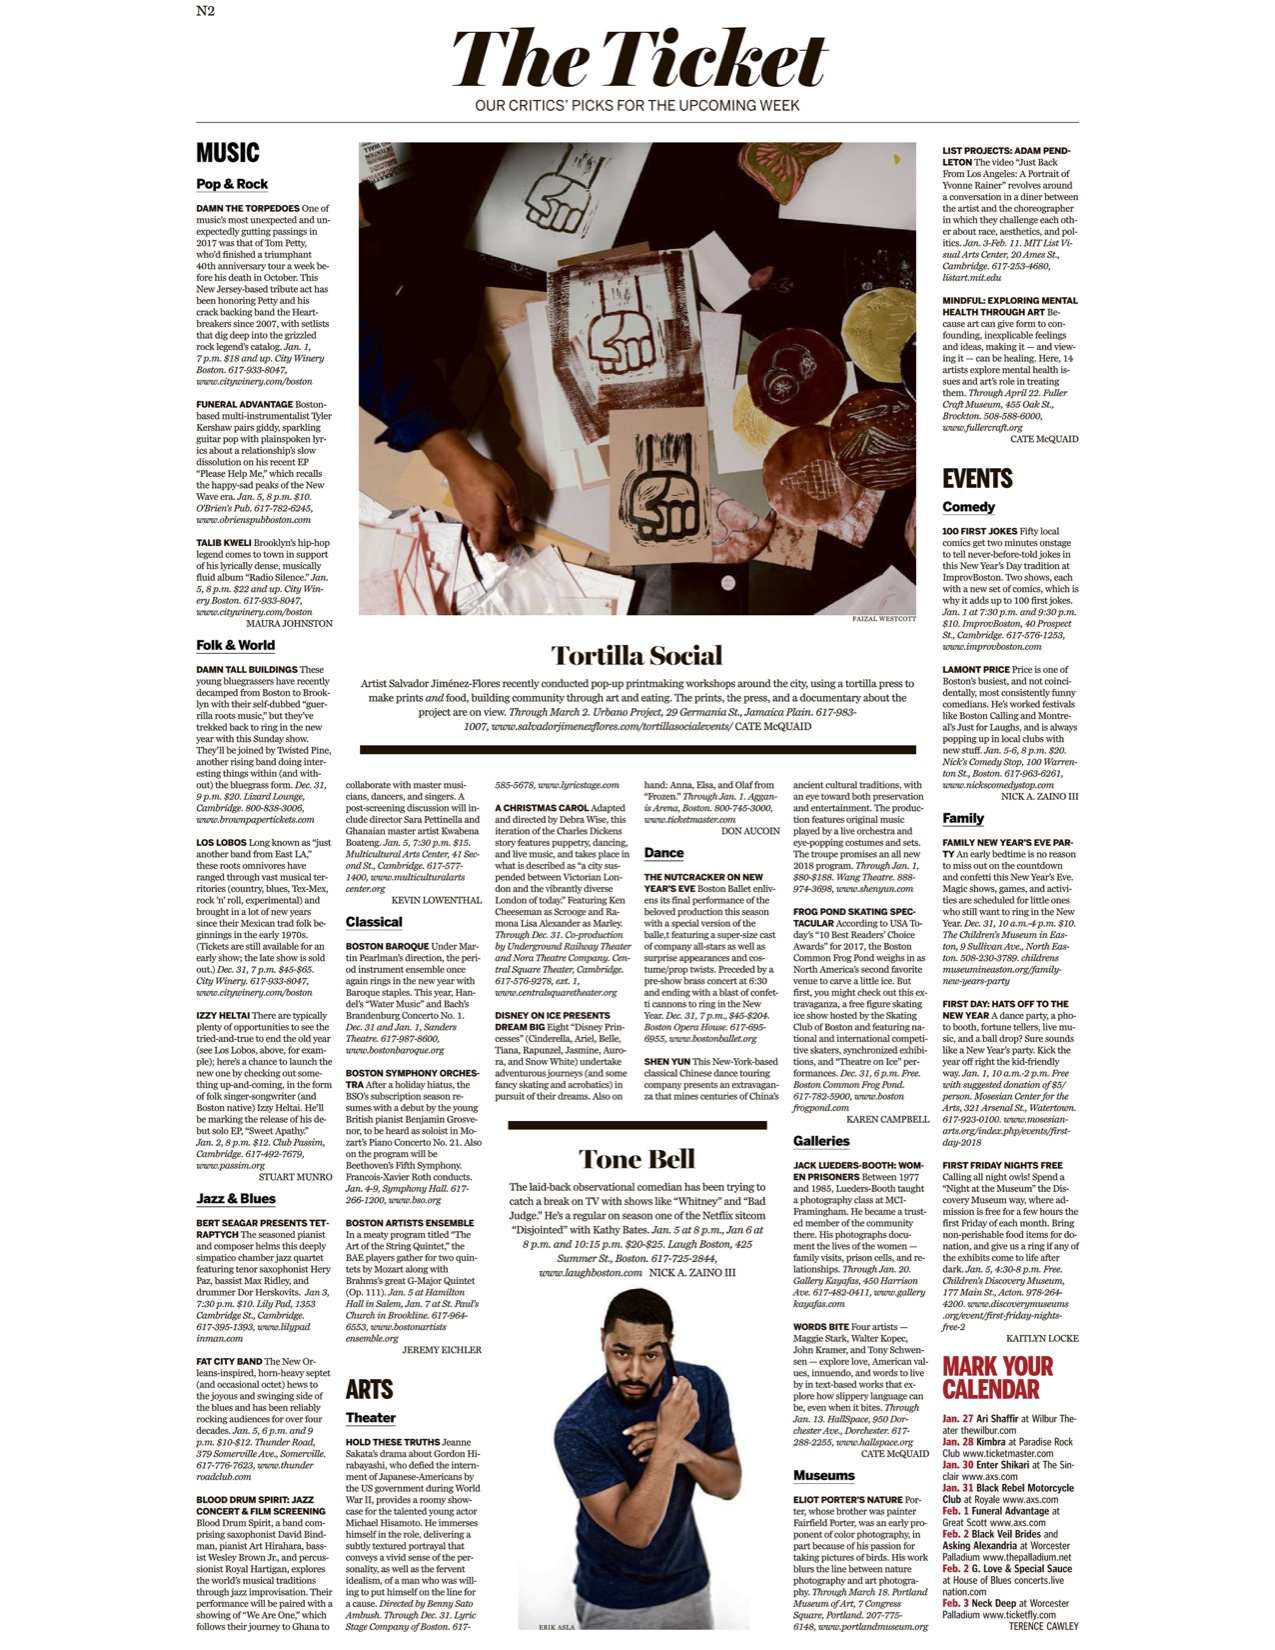 The Boston Globe_December 31, 2017_Tortilla Social at Urbano Project.jpg